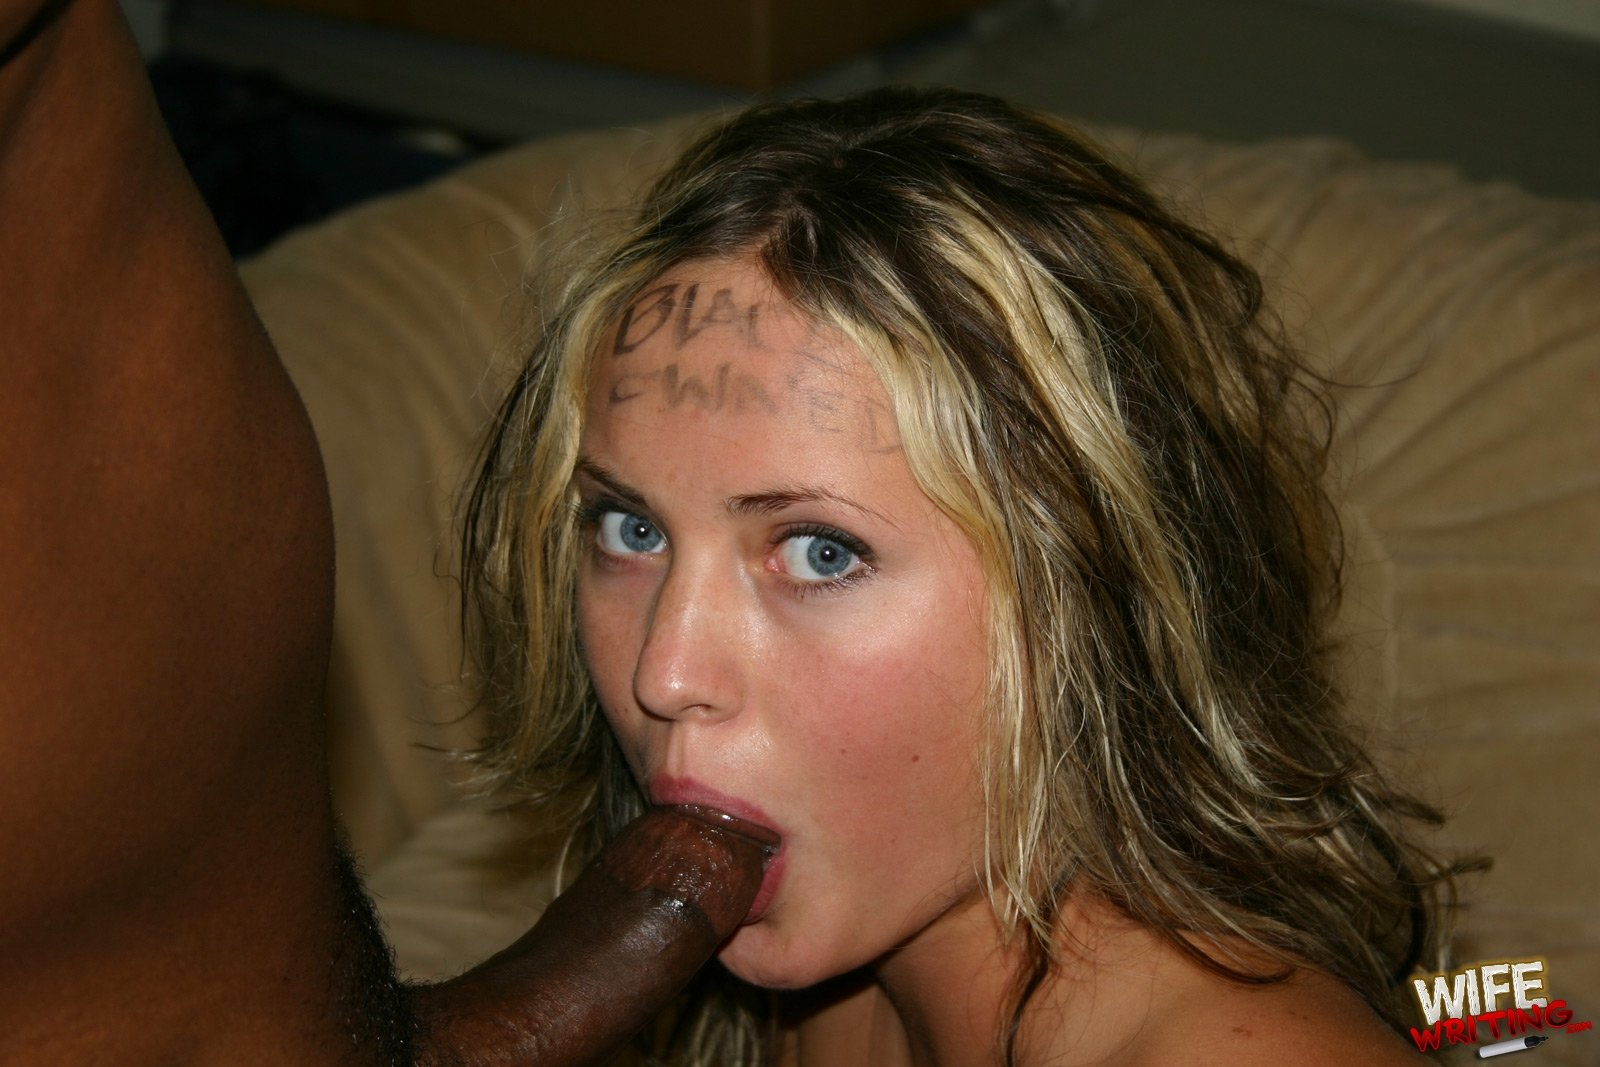 My husband is a great cuckold